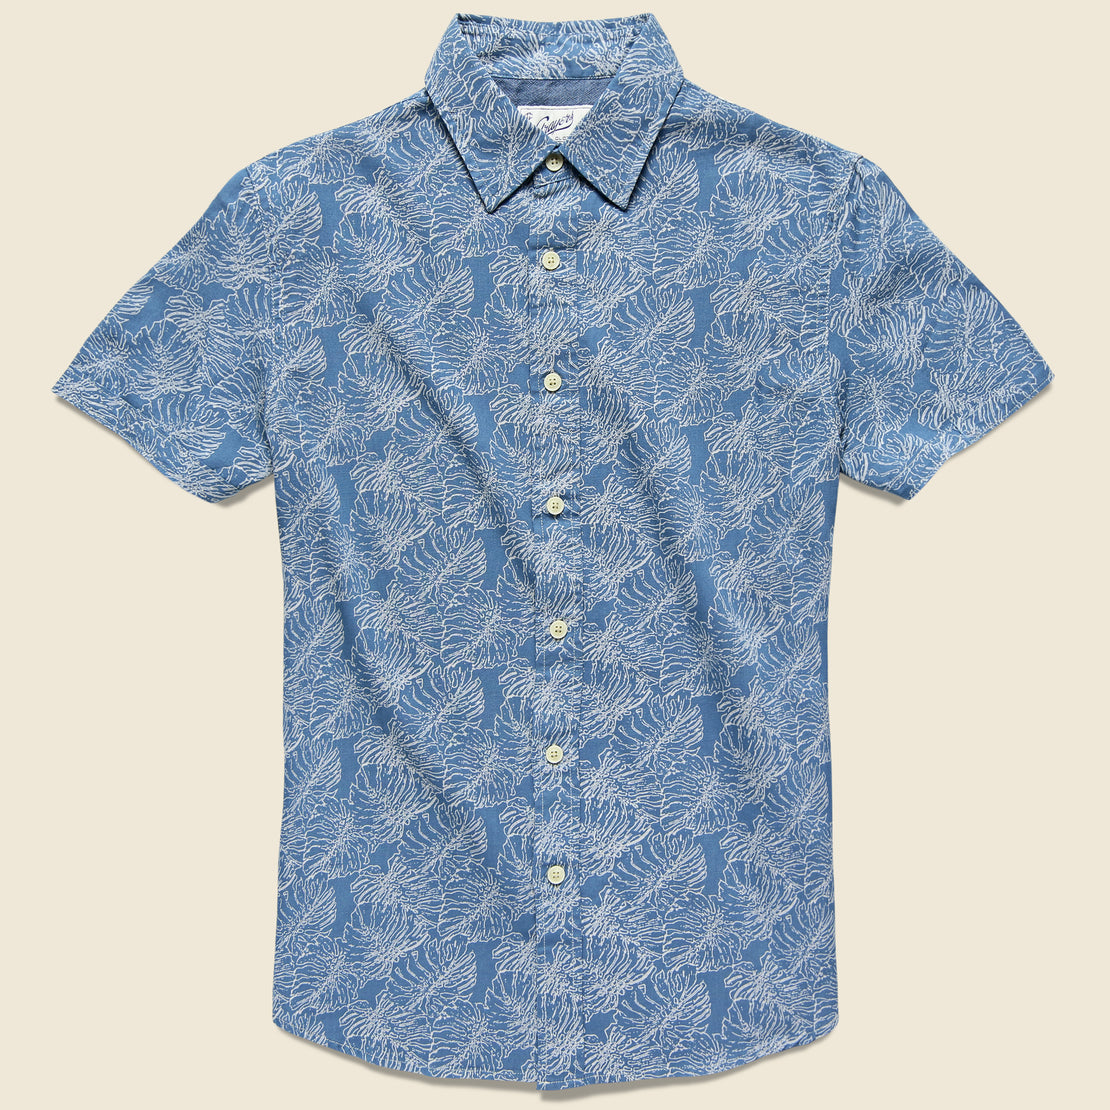 Grayers Leaf Print Summer Weave Shirt - Moonlight Blue